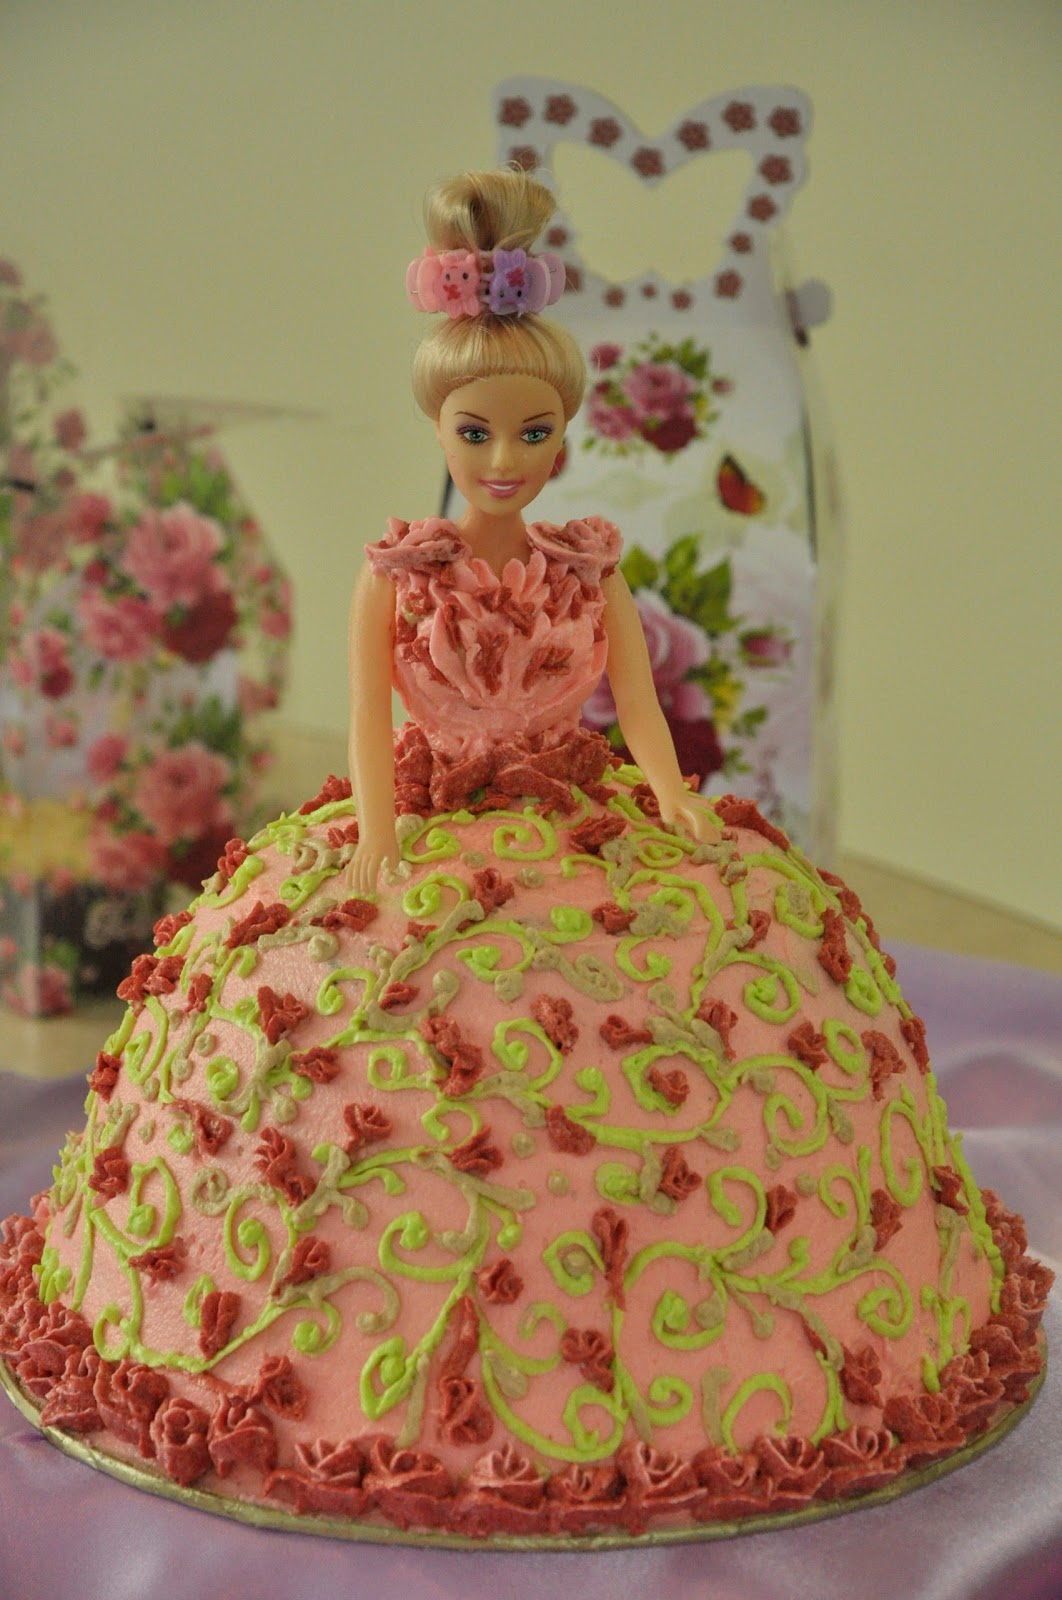 The Kitchen Journal Doll Cakes and Butterfly Fairy Cakes